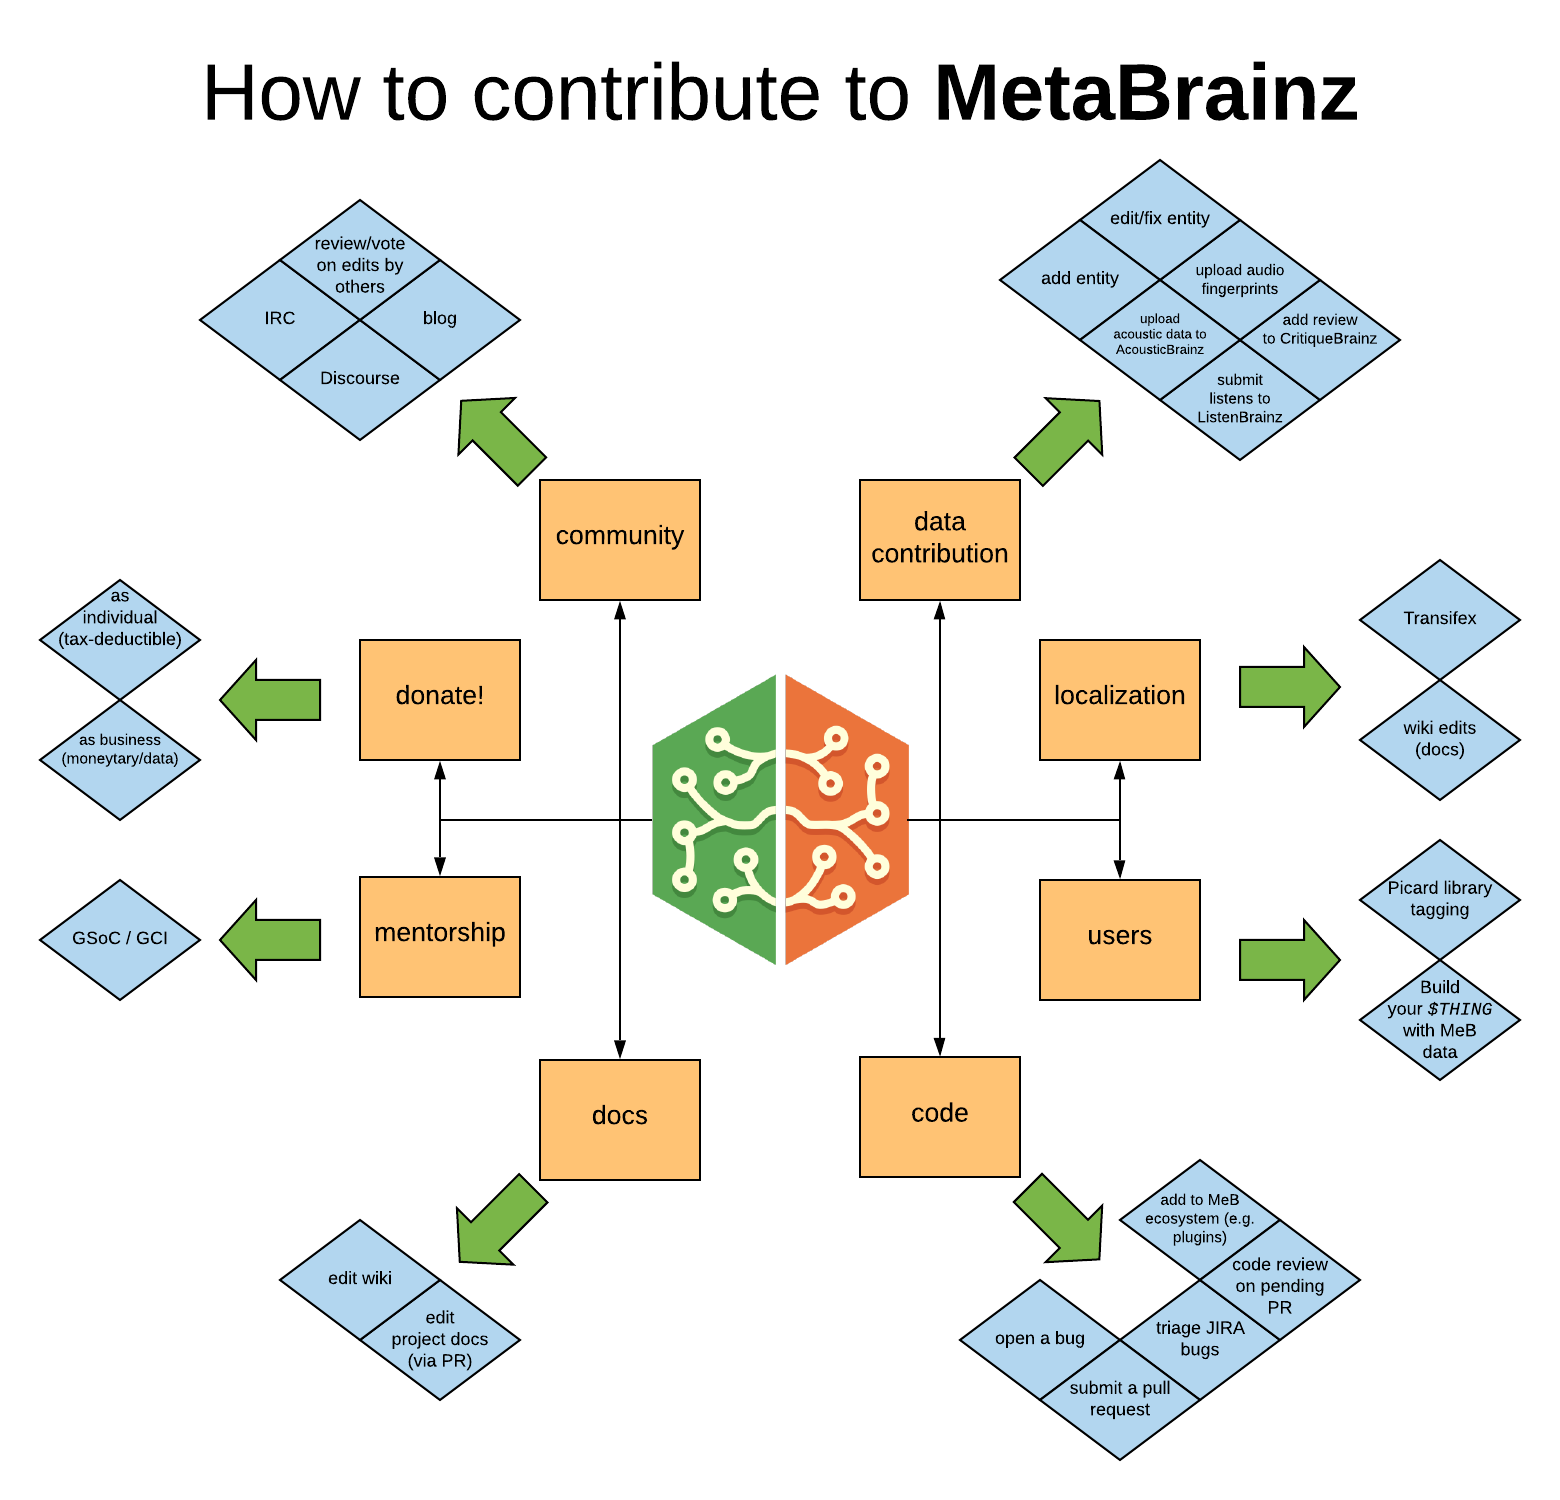 A flowchart of the MetaBrainz community, pointing to different pathways of getting involved: Data contribution, localization, users, code, documentation, mentorship, donations, and community.